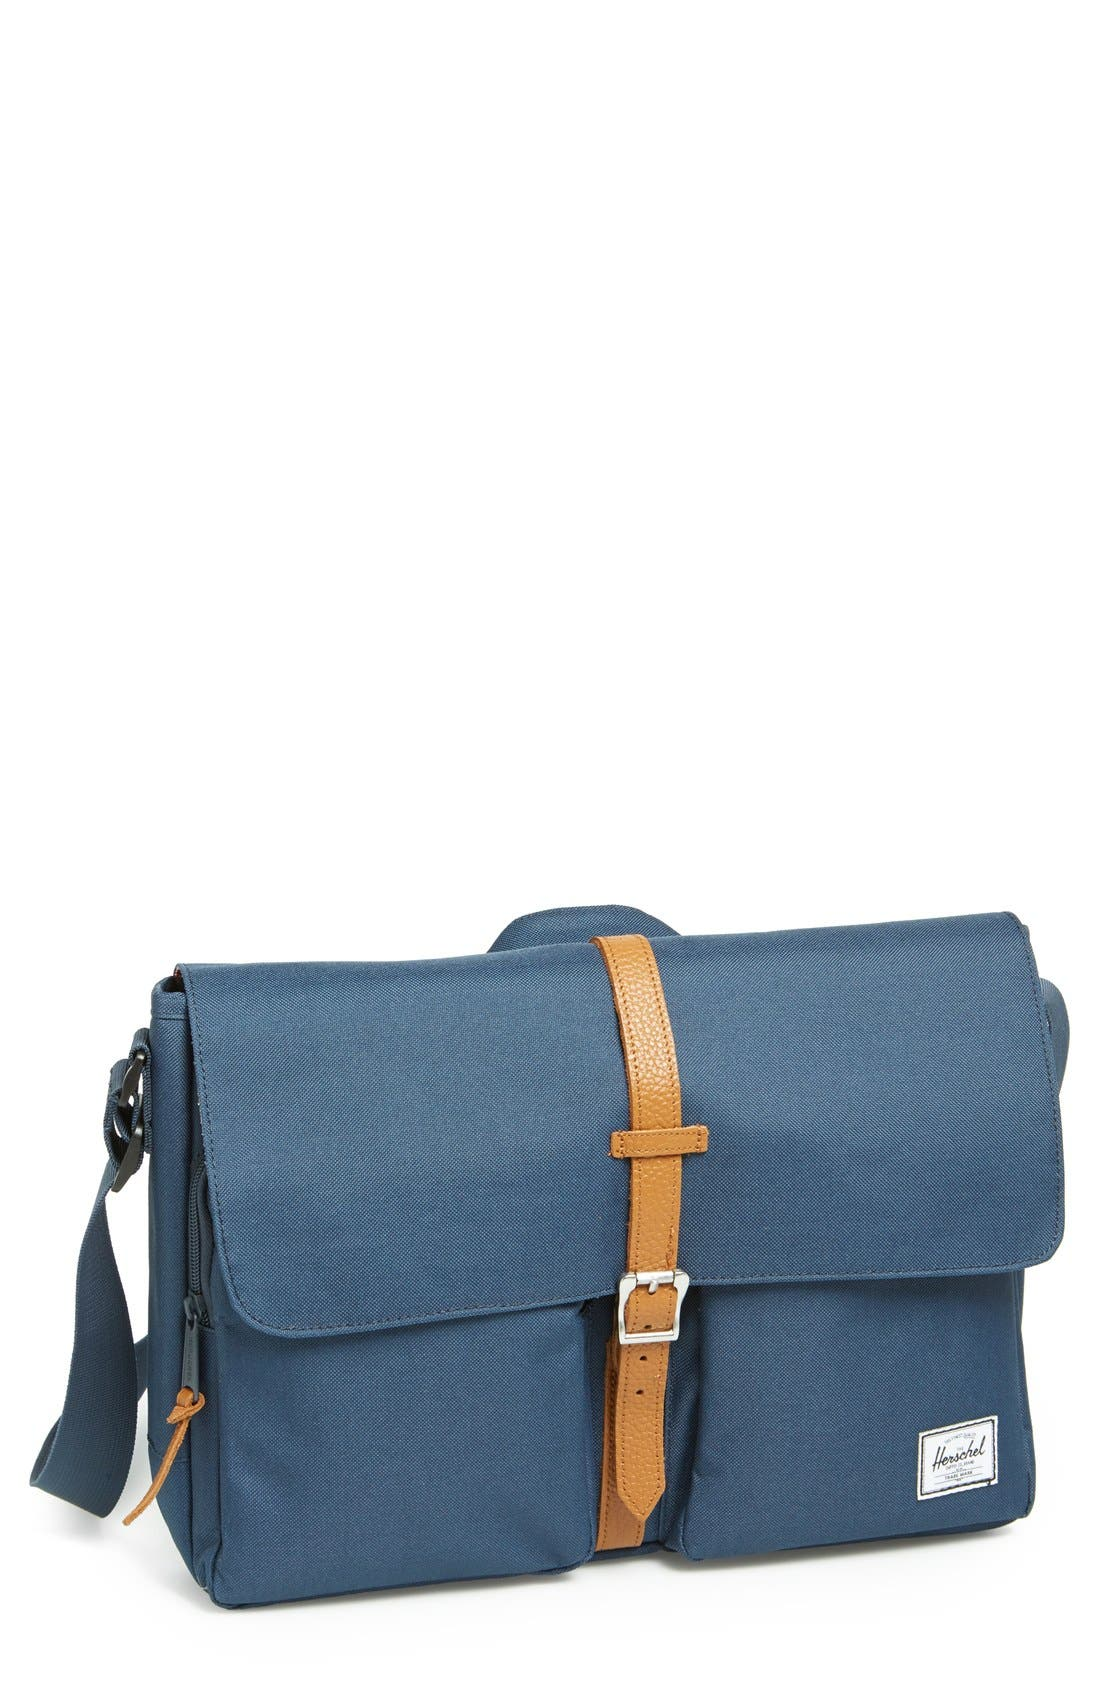 Main Image - Herschel Supply Co. 'Columbia' Messenger Bag